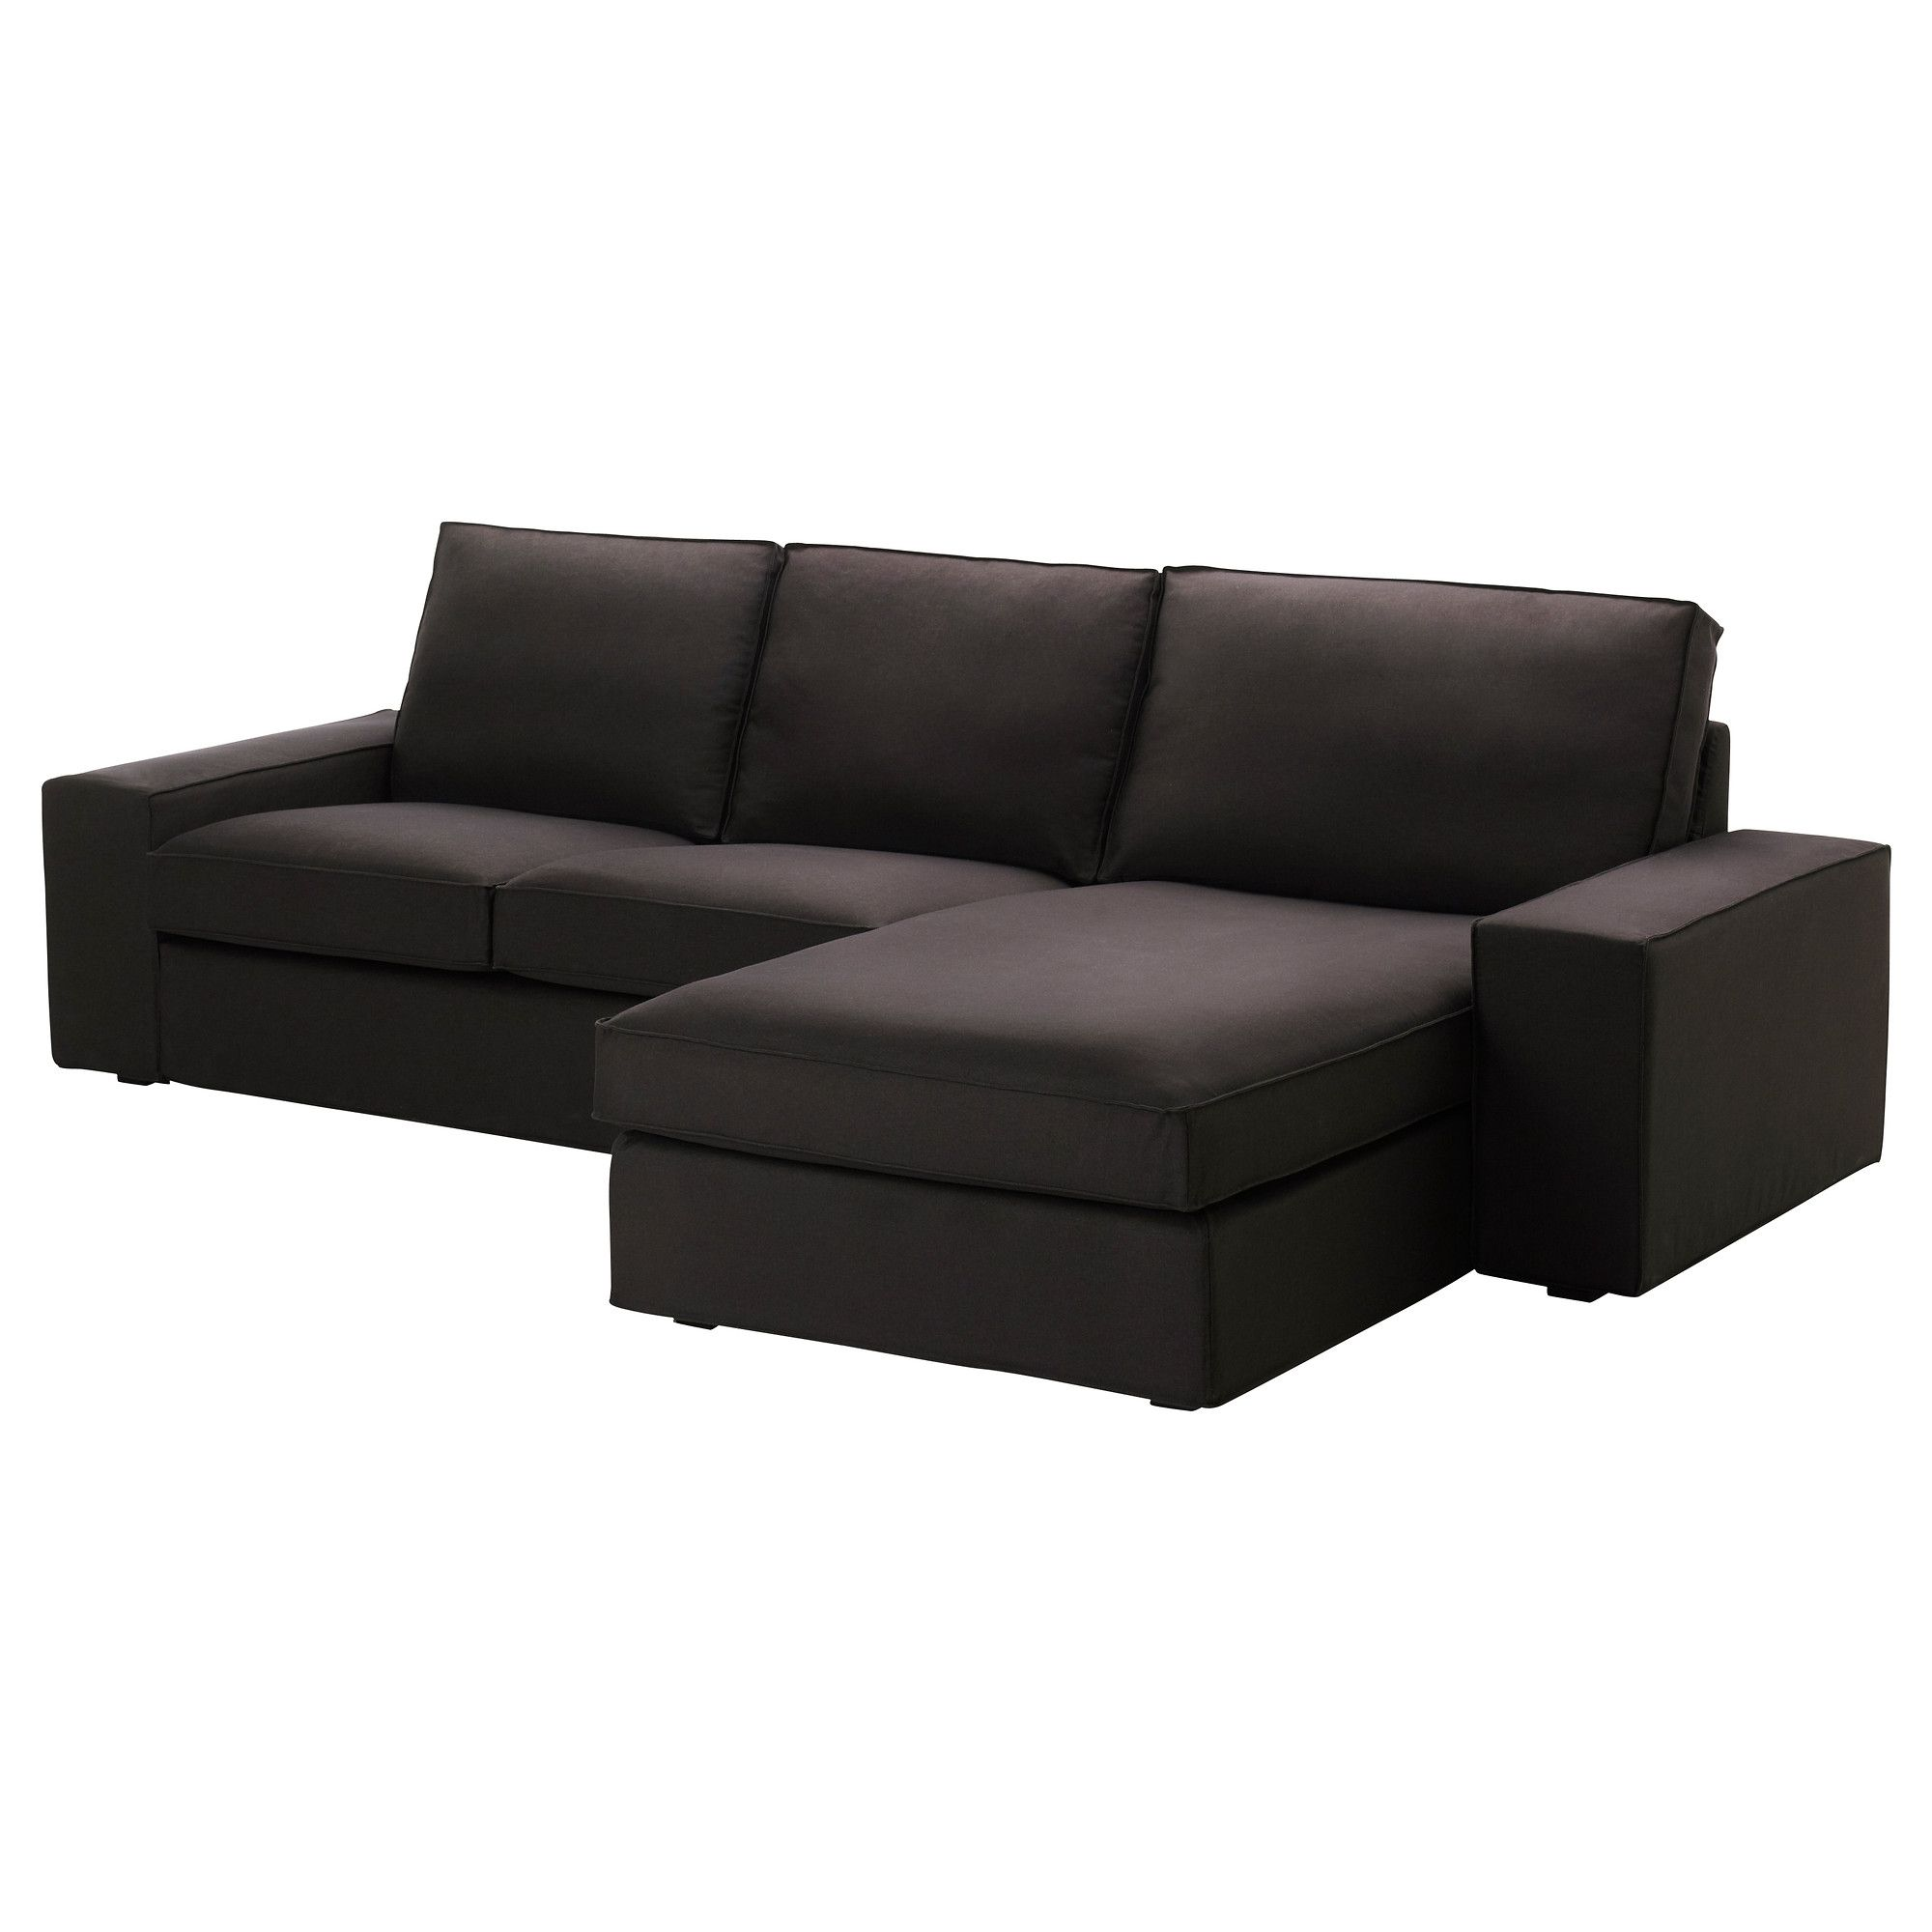 Kivik Loveseat And Chaise Lounge Idemo Black Ikea For The Home Pinterest Chaise